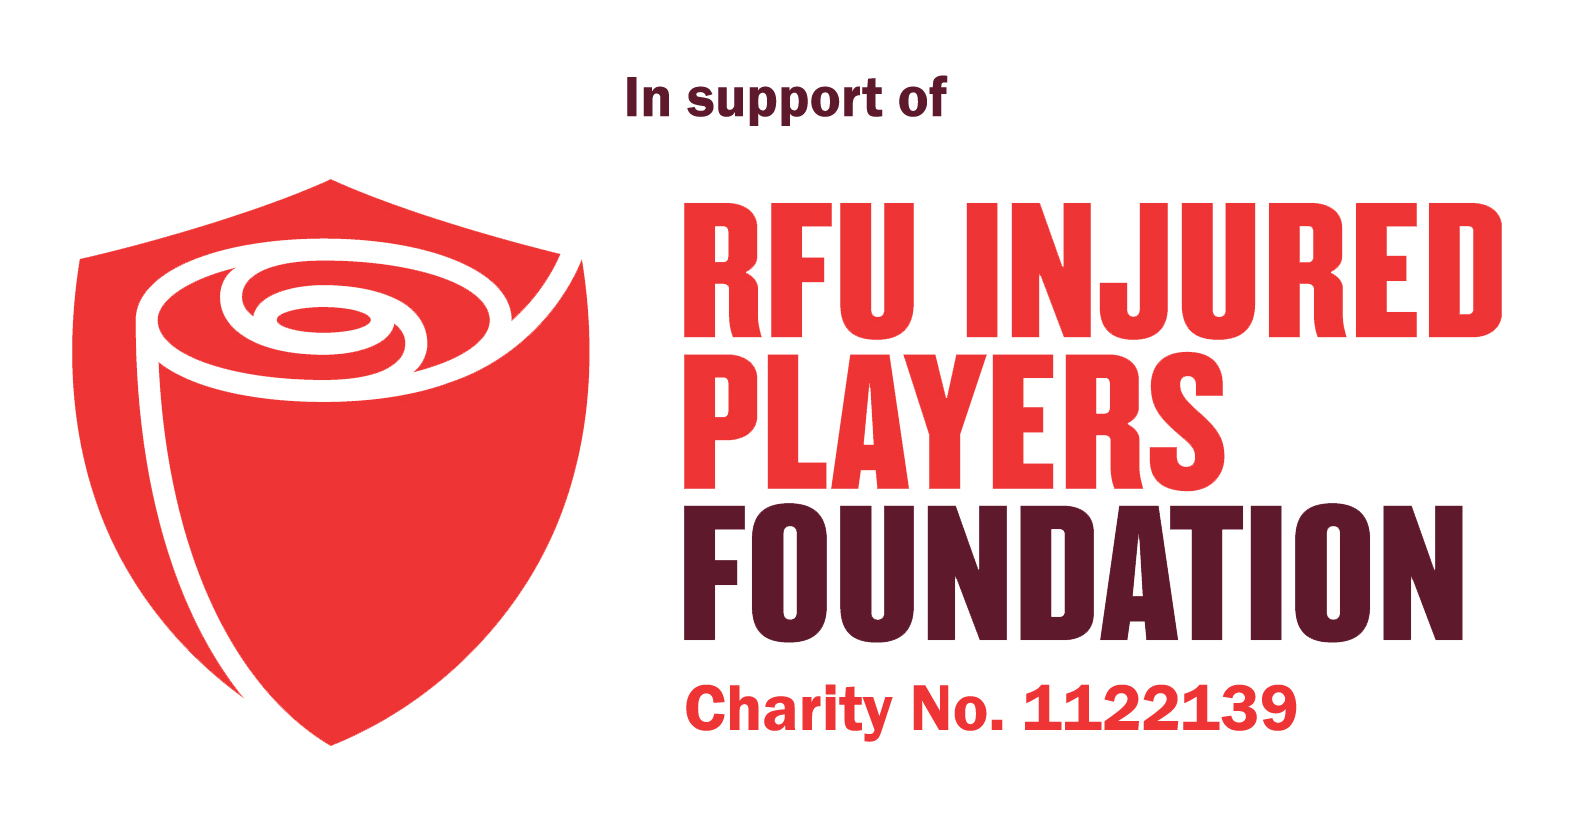 IPF Logo - 'In Support of' with charity number.jpg